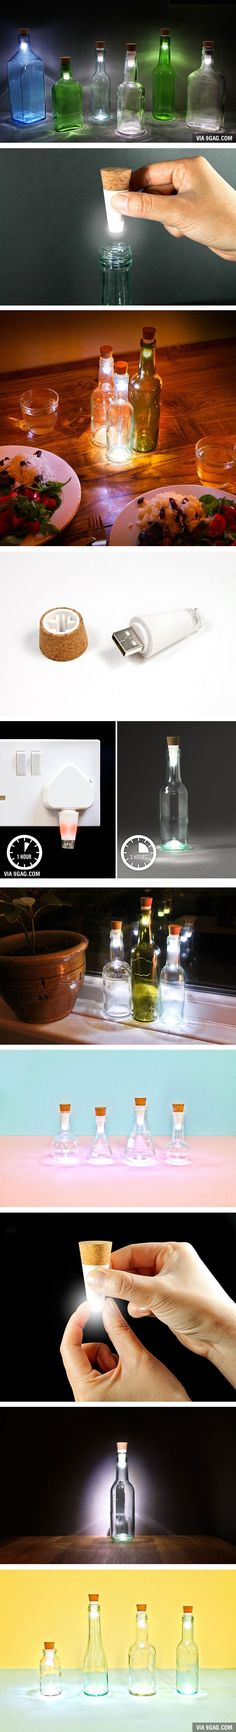 You Can Turn Your Old Bottles Into Lamps With Rechargeable LED Corks!